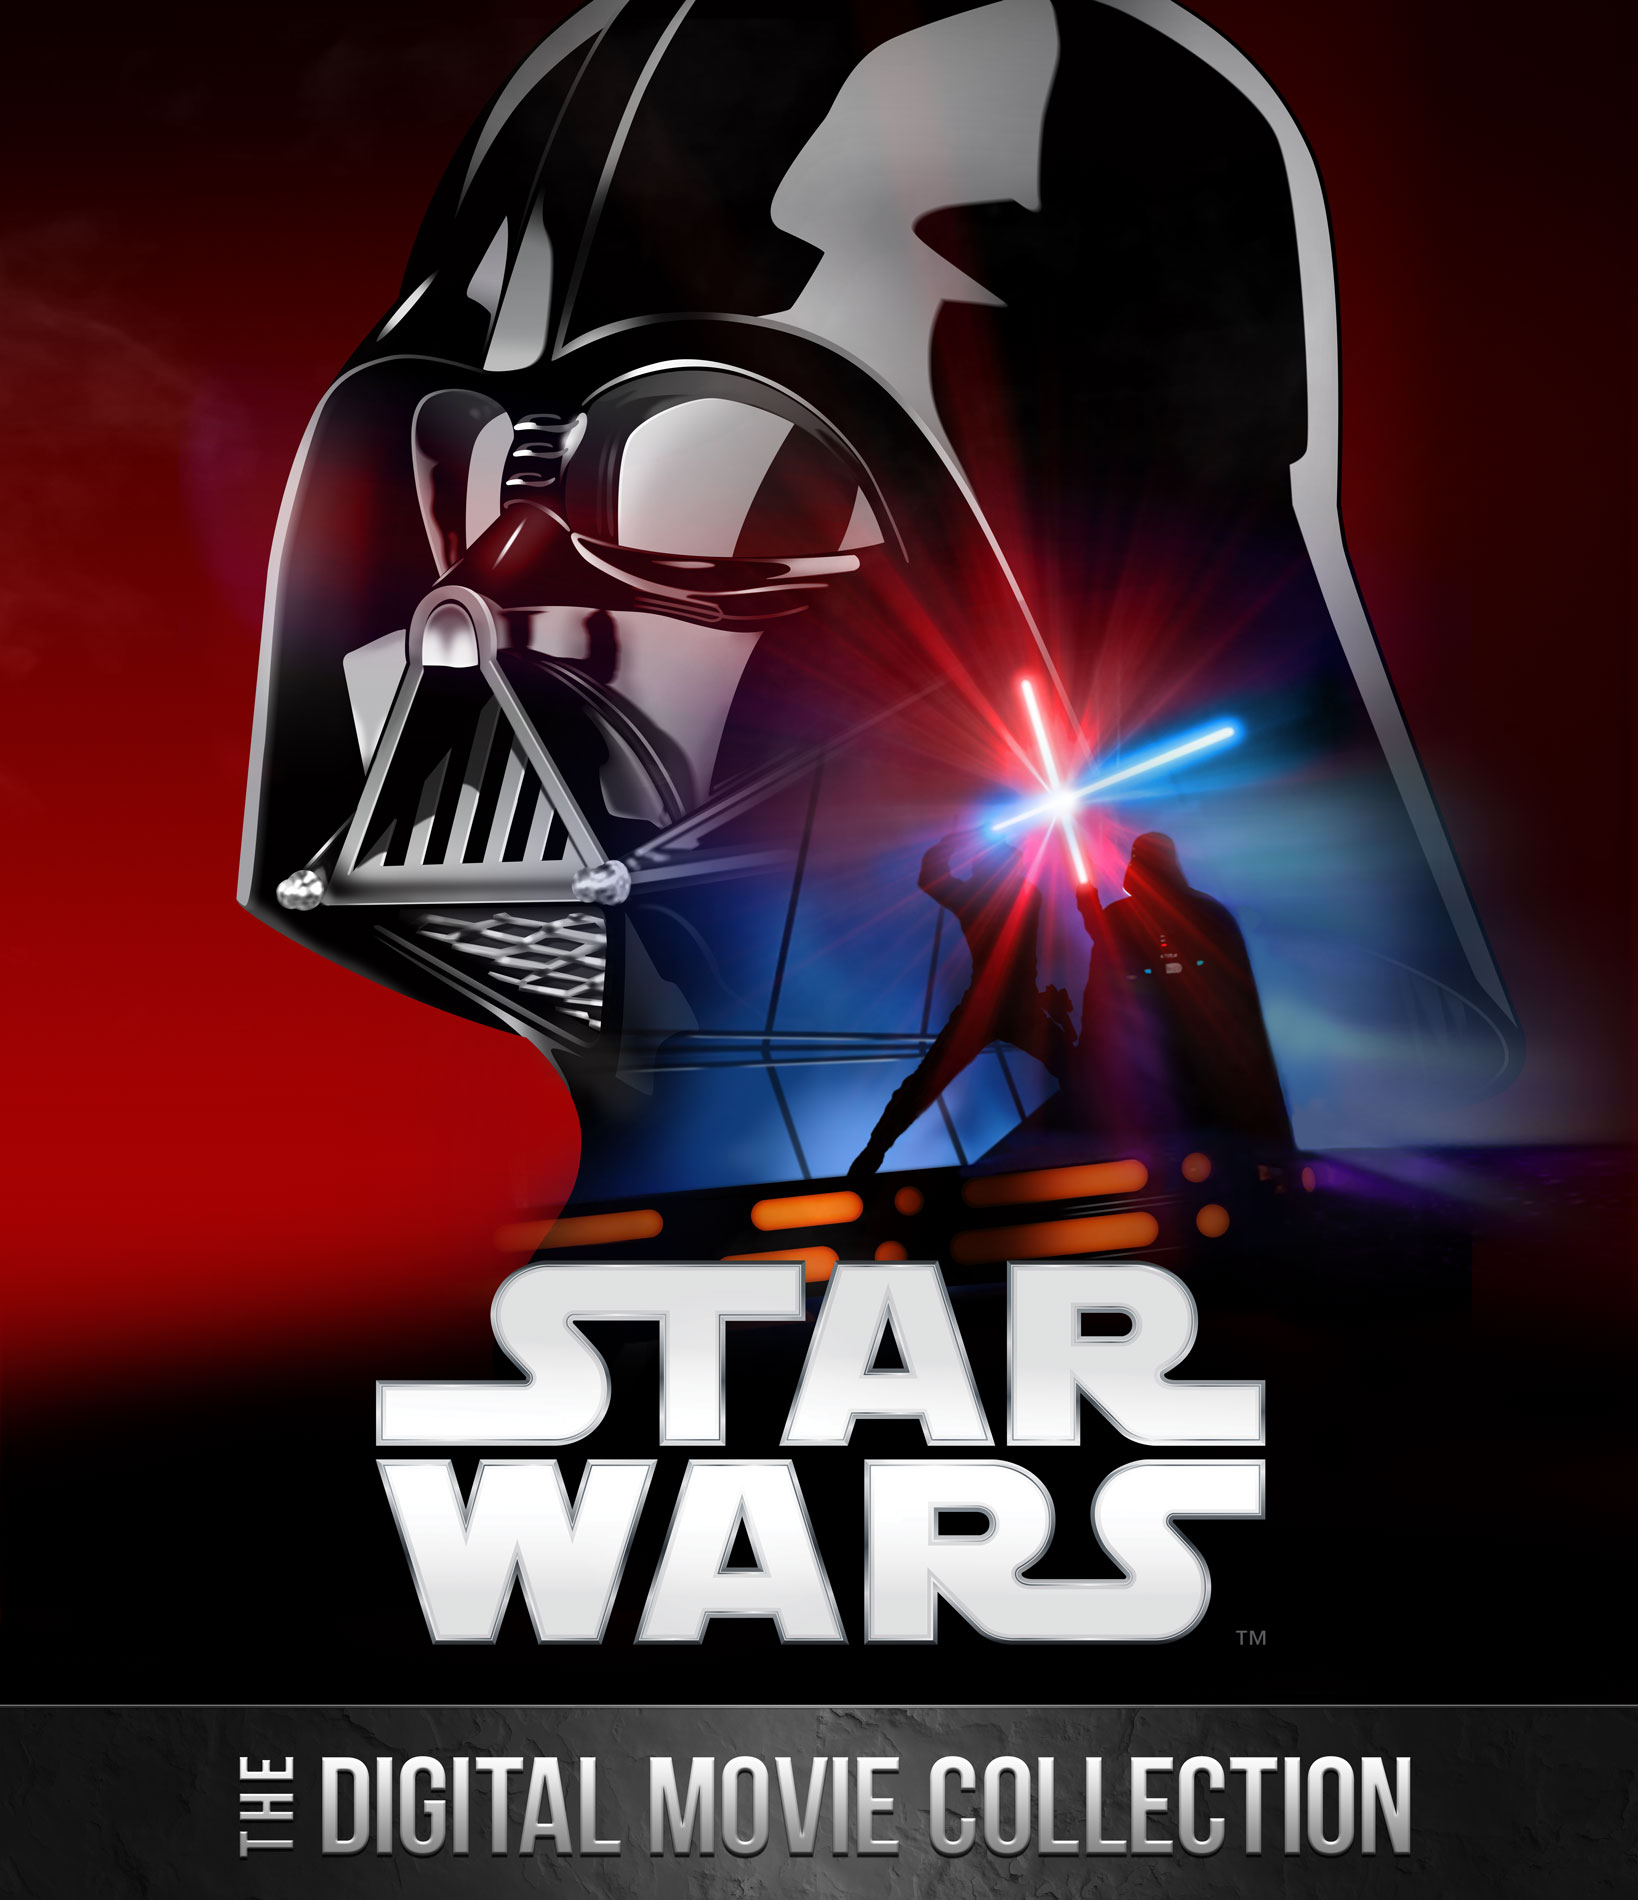 Star wars iv movie download